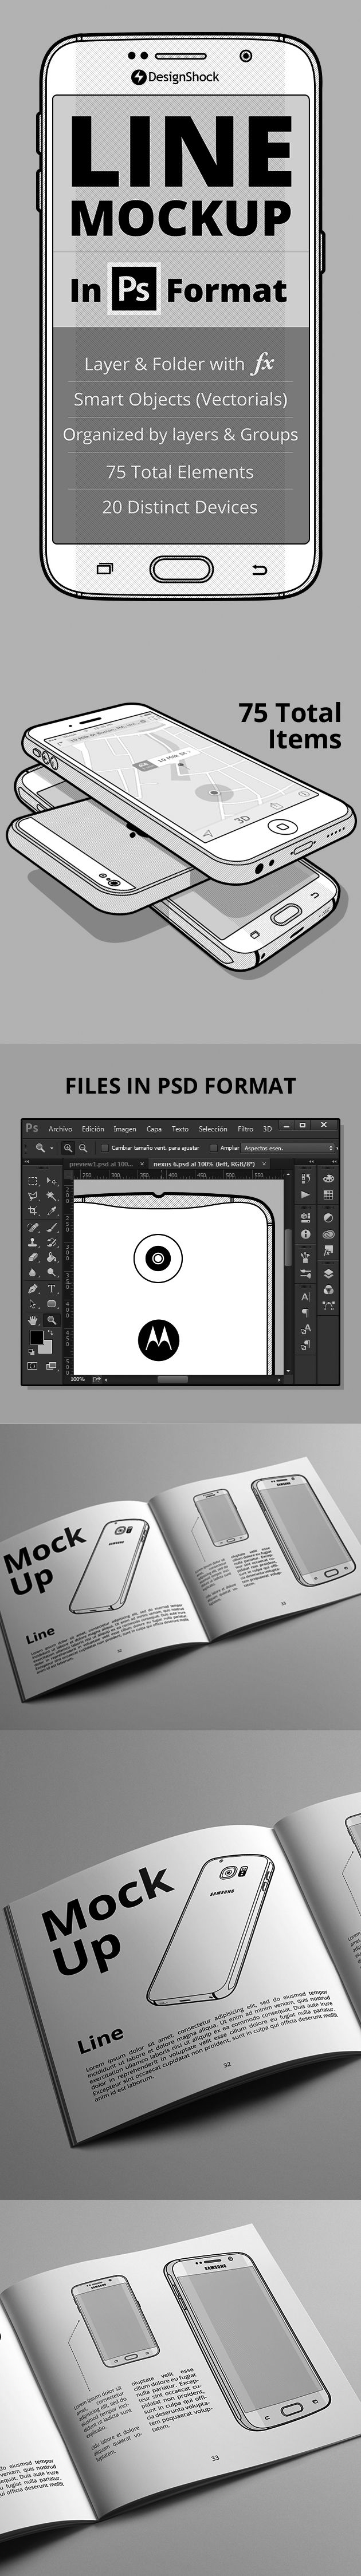 Mobile Mockup PSD: 75 Items, Line Style.